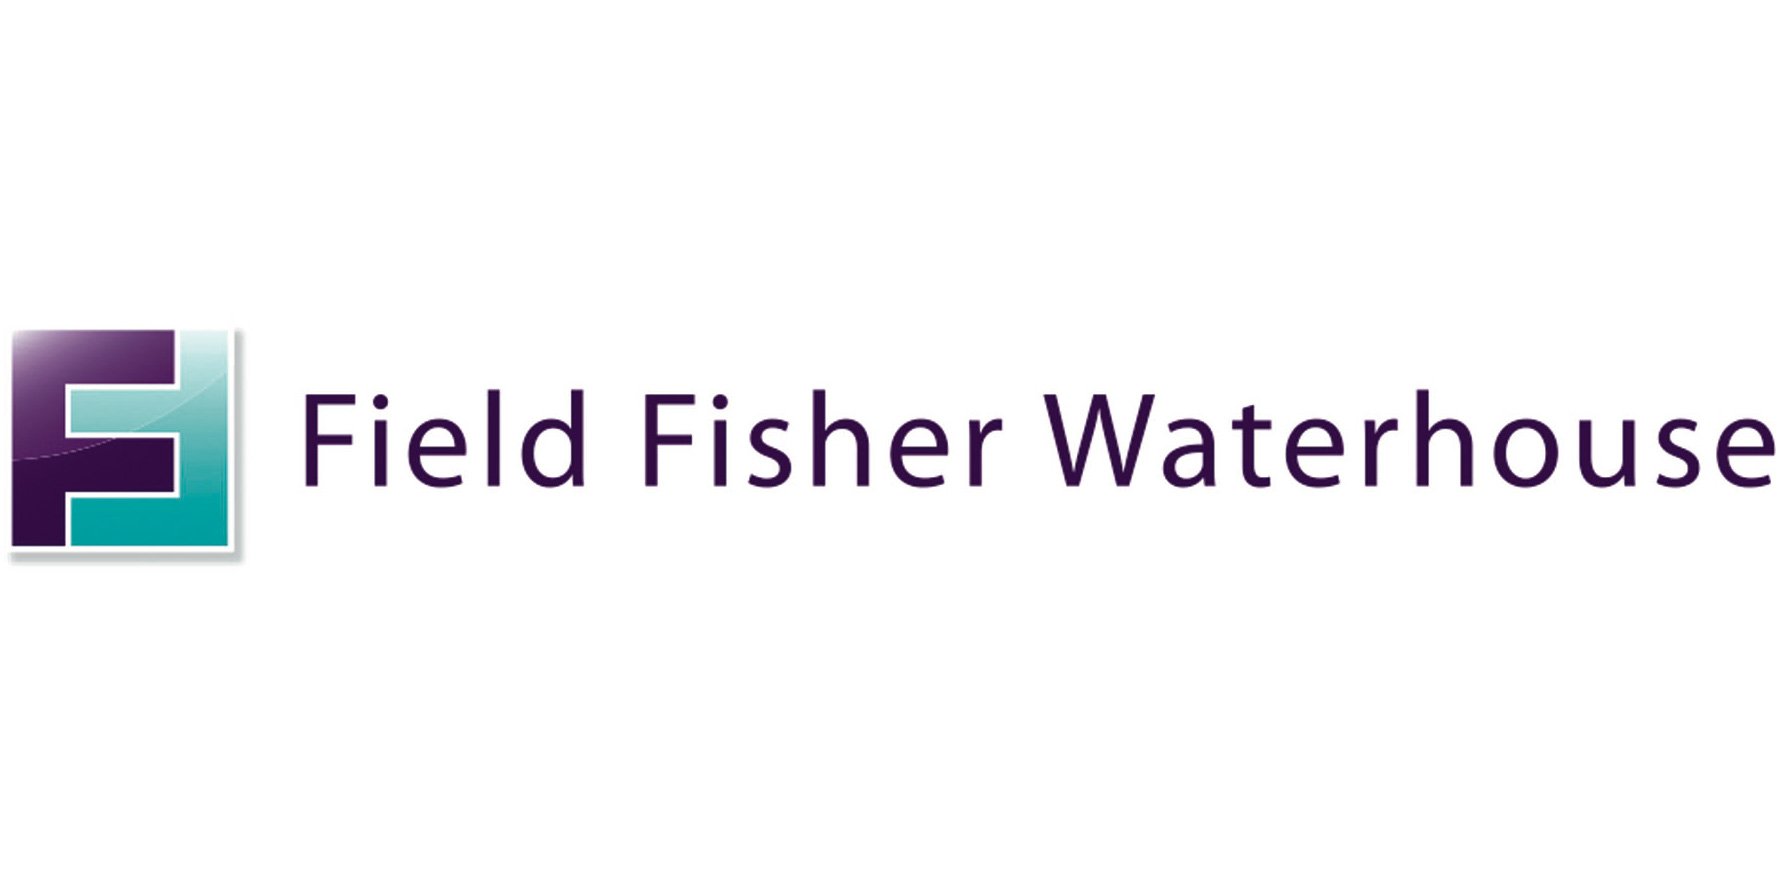 Field Fisher Waterhouse